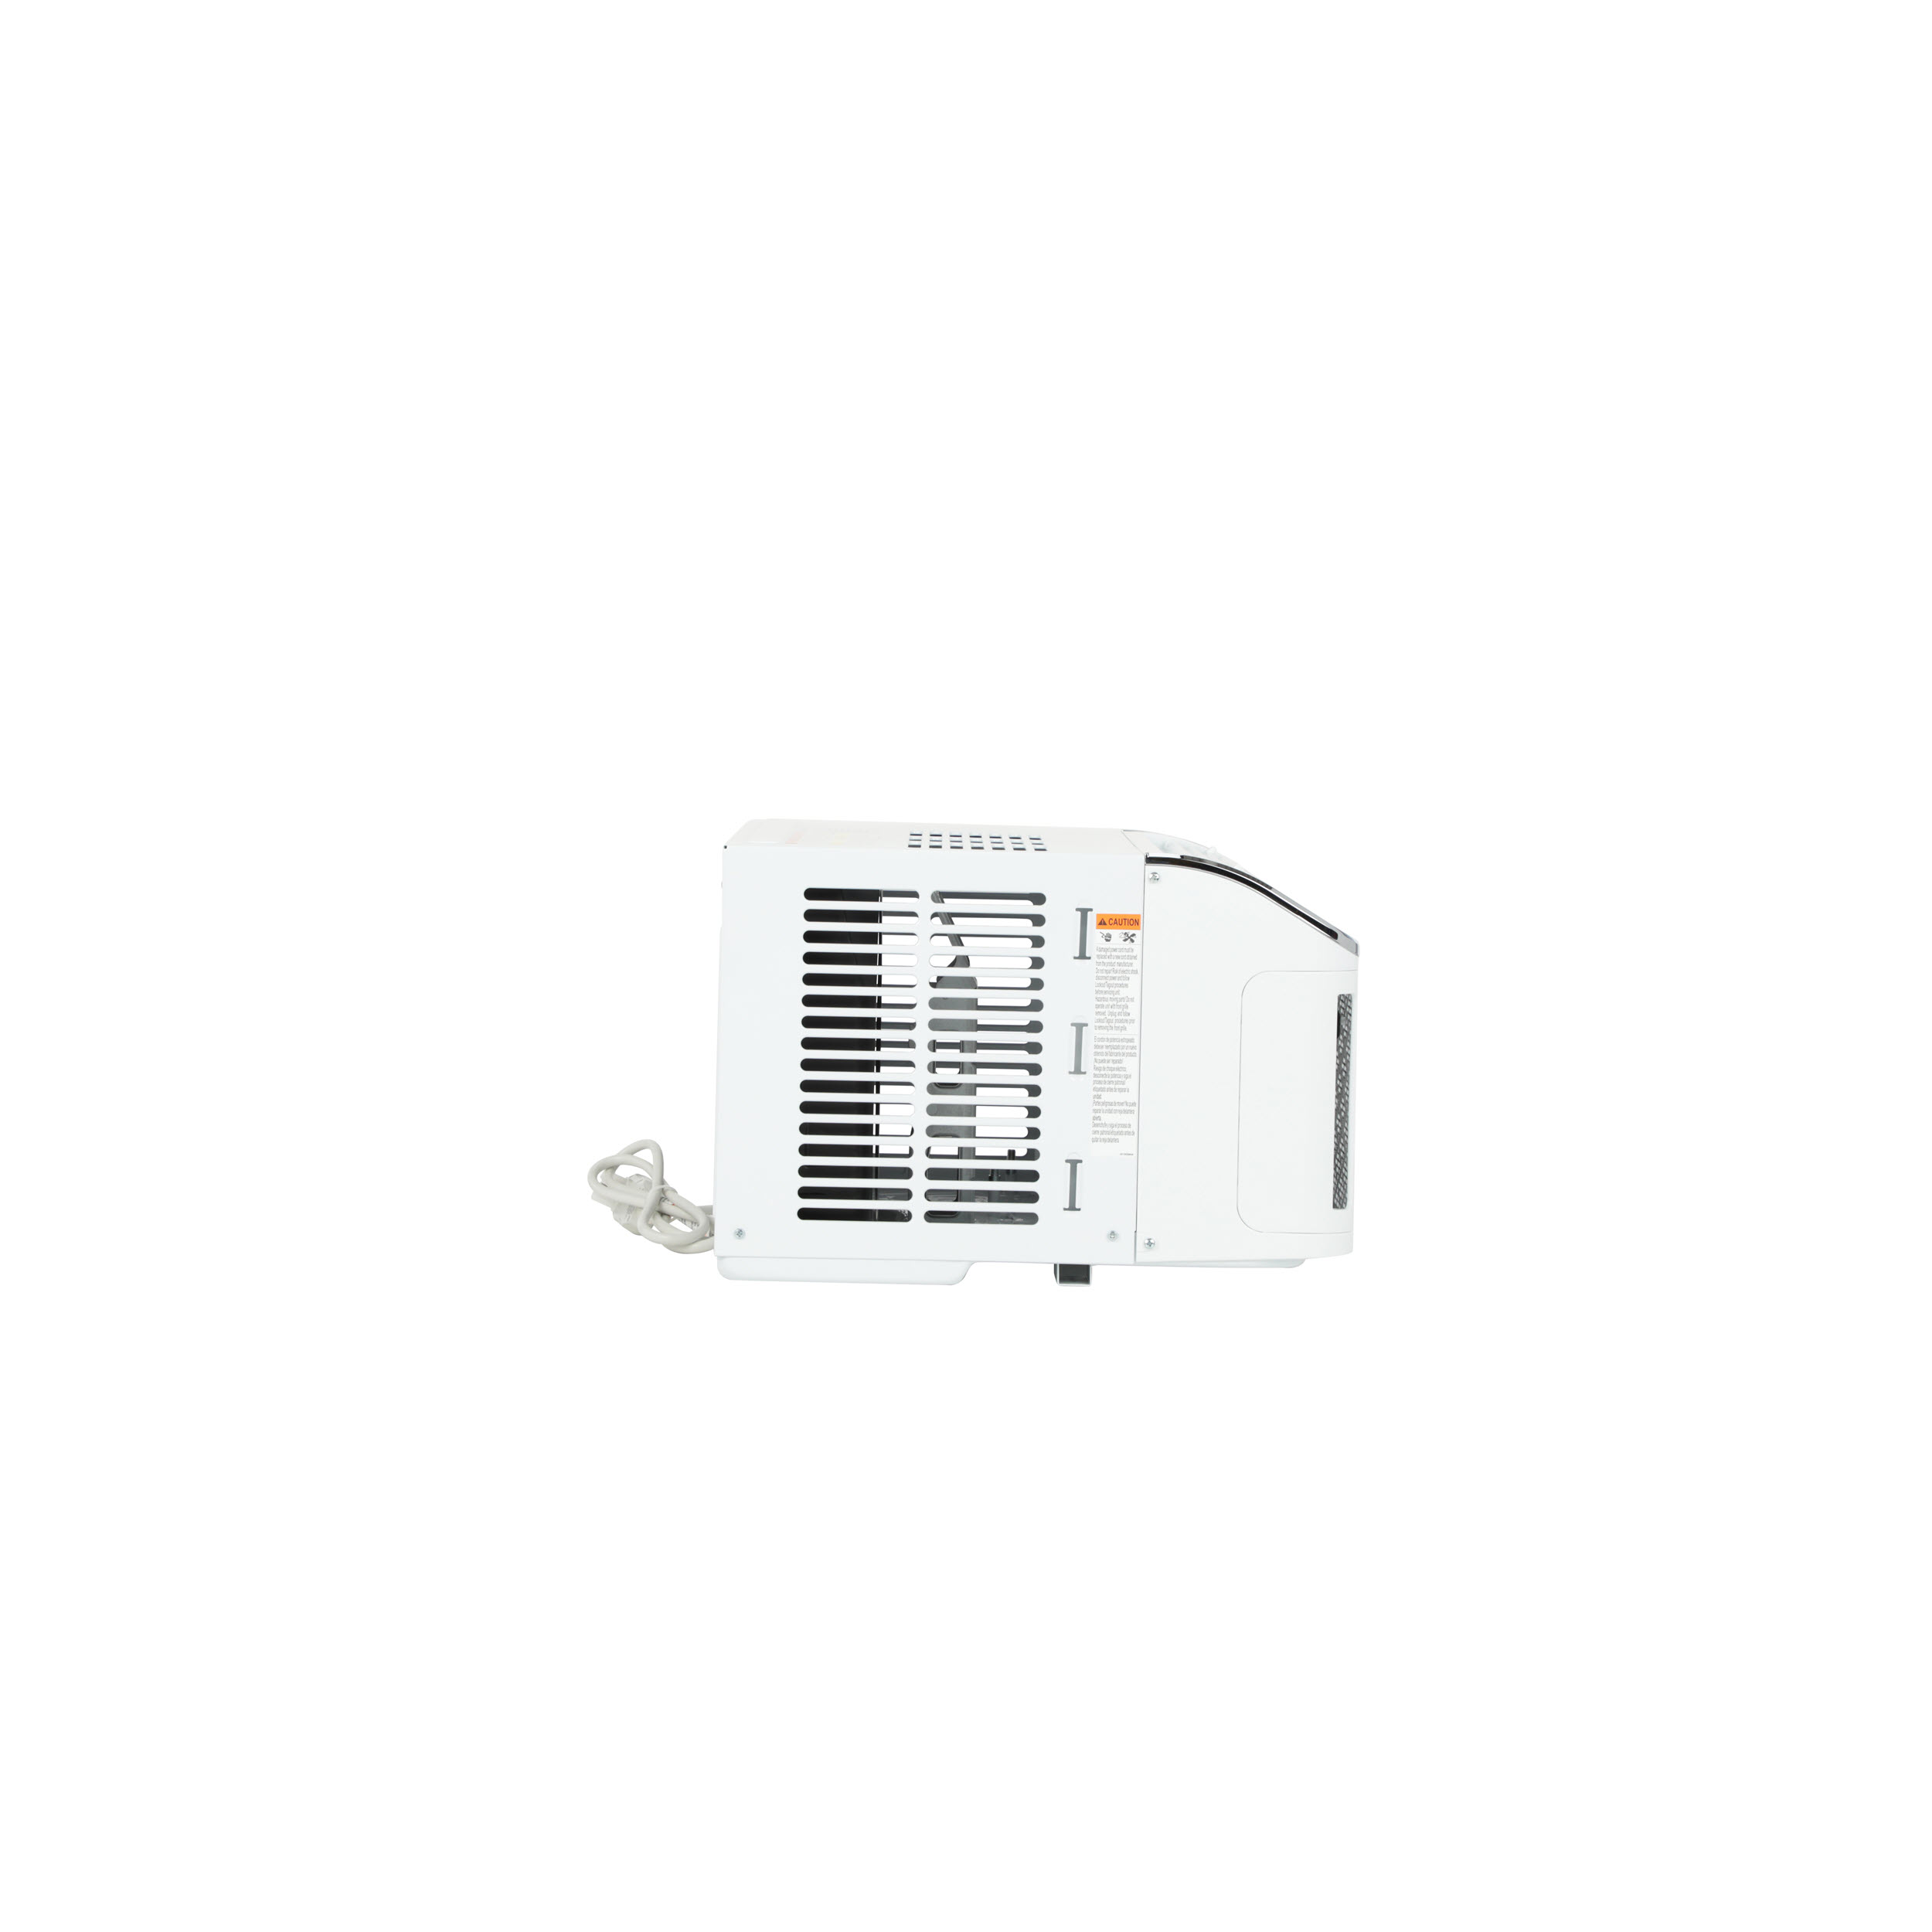 Model: PHC06LY | GE Profile GE Profile™ ENERGY STAR® 6,150 BTU Smart Ultra Quiet Window Air Conditioner for Small Rooms up to 250 sq. ft.